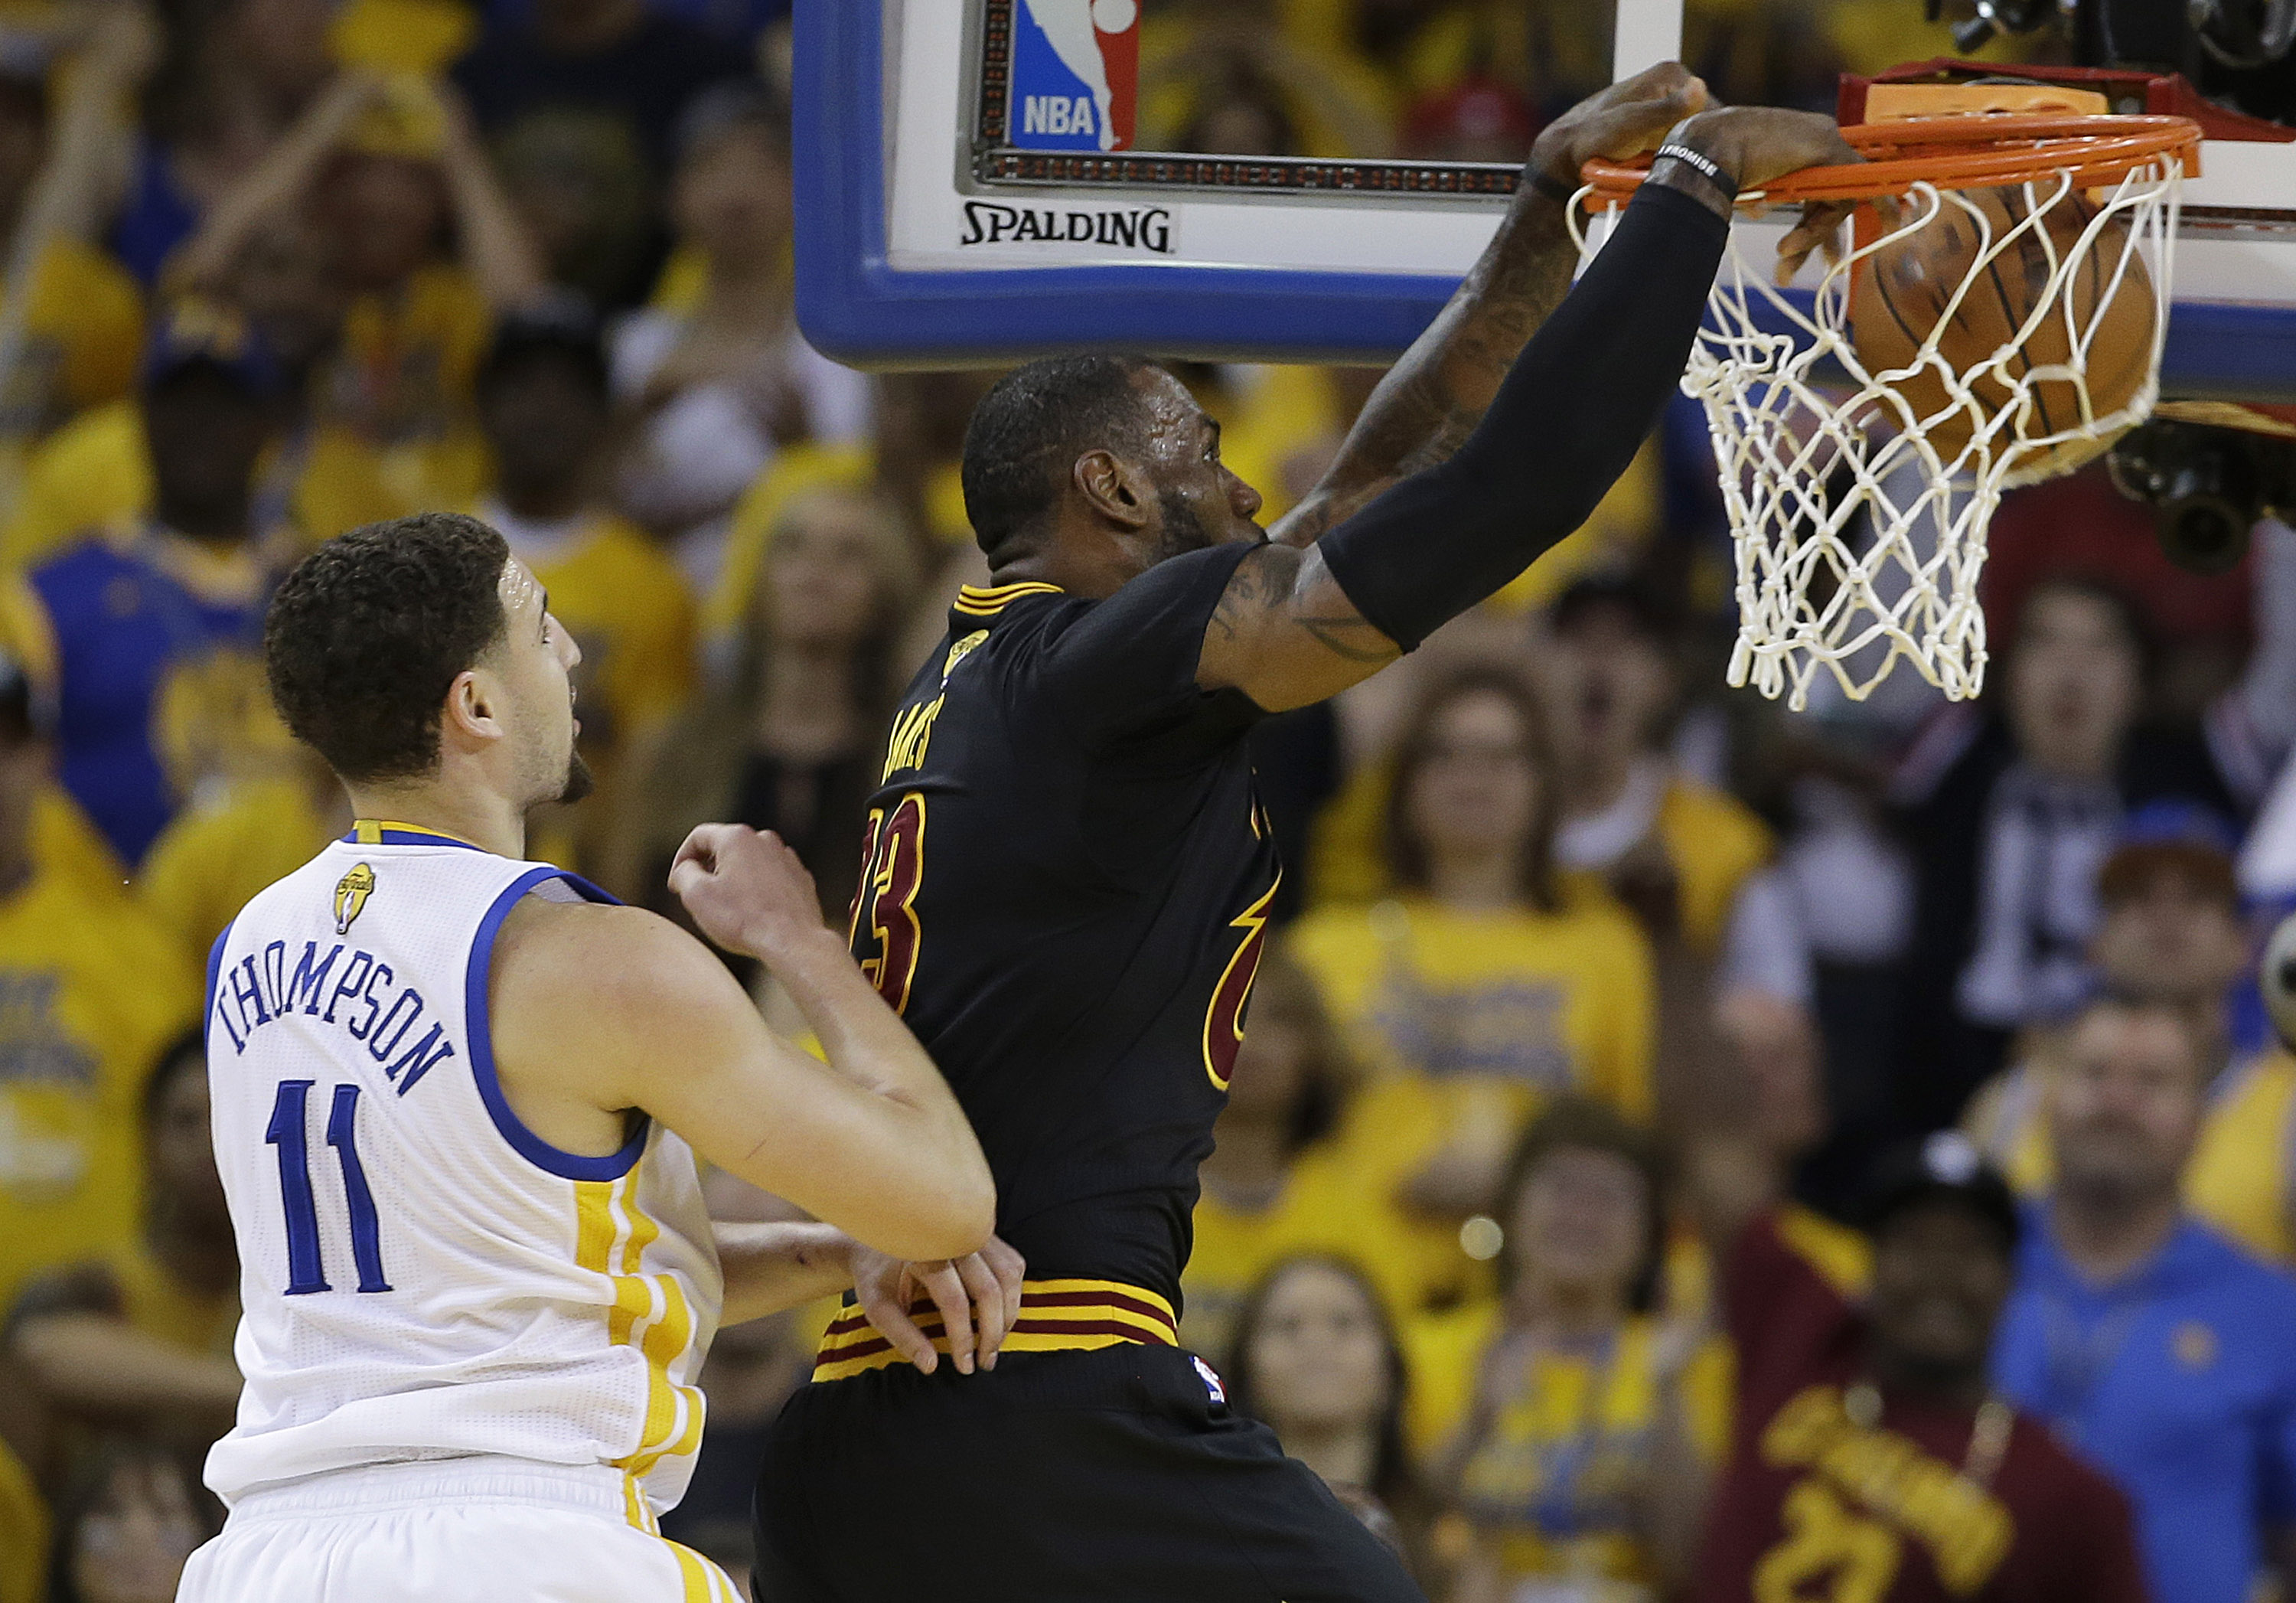 Cleveland Cavaliers forward LeBron James, right, dunks in ...